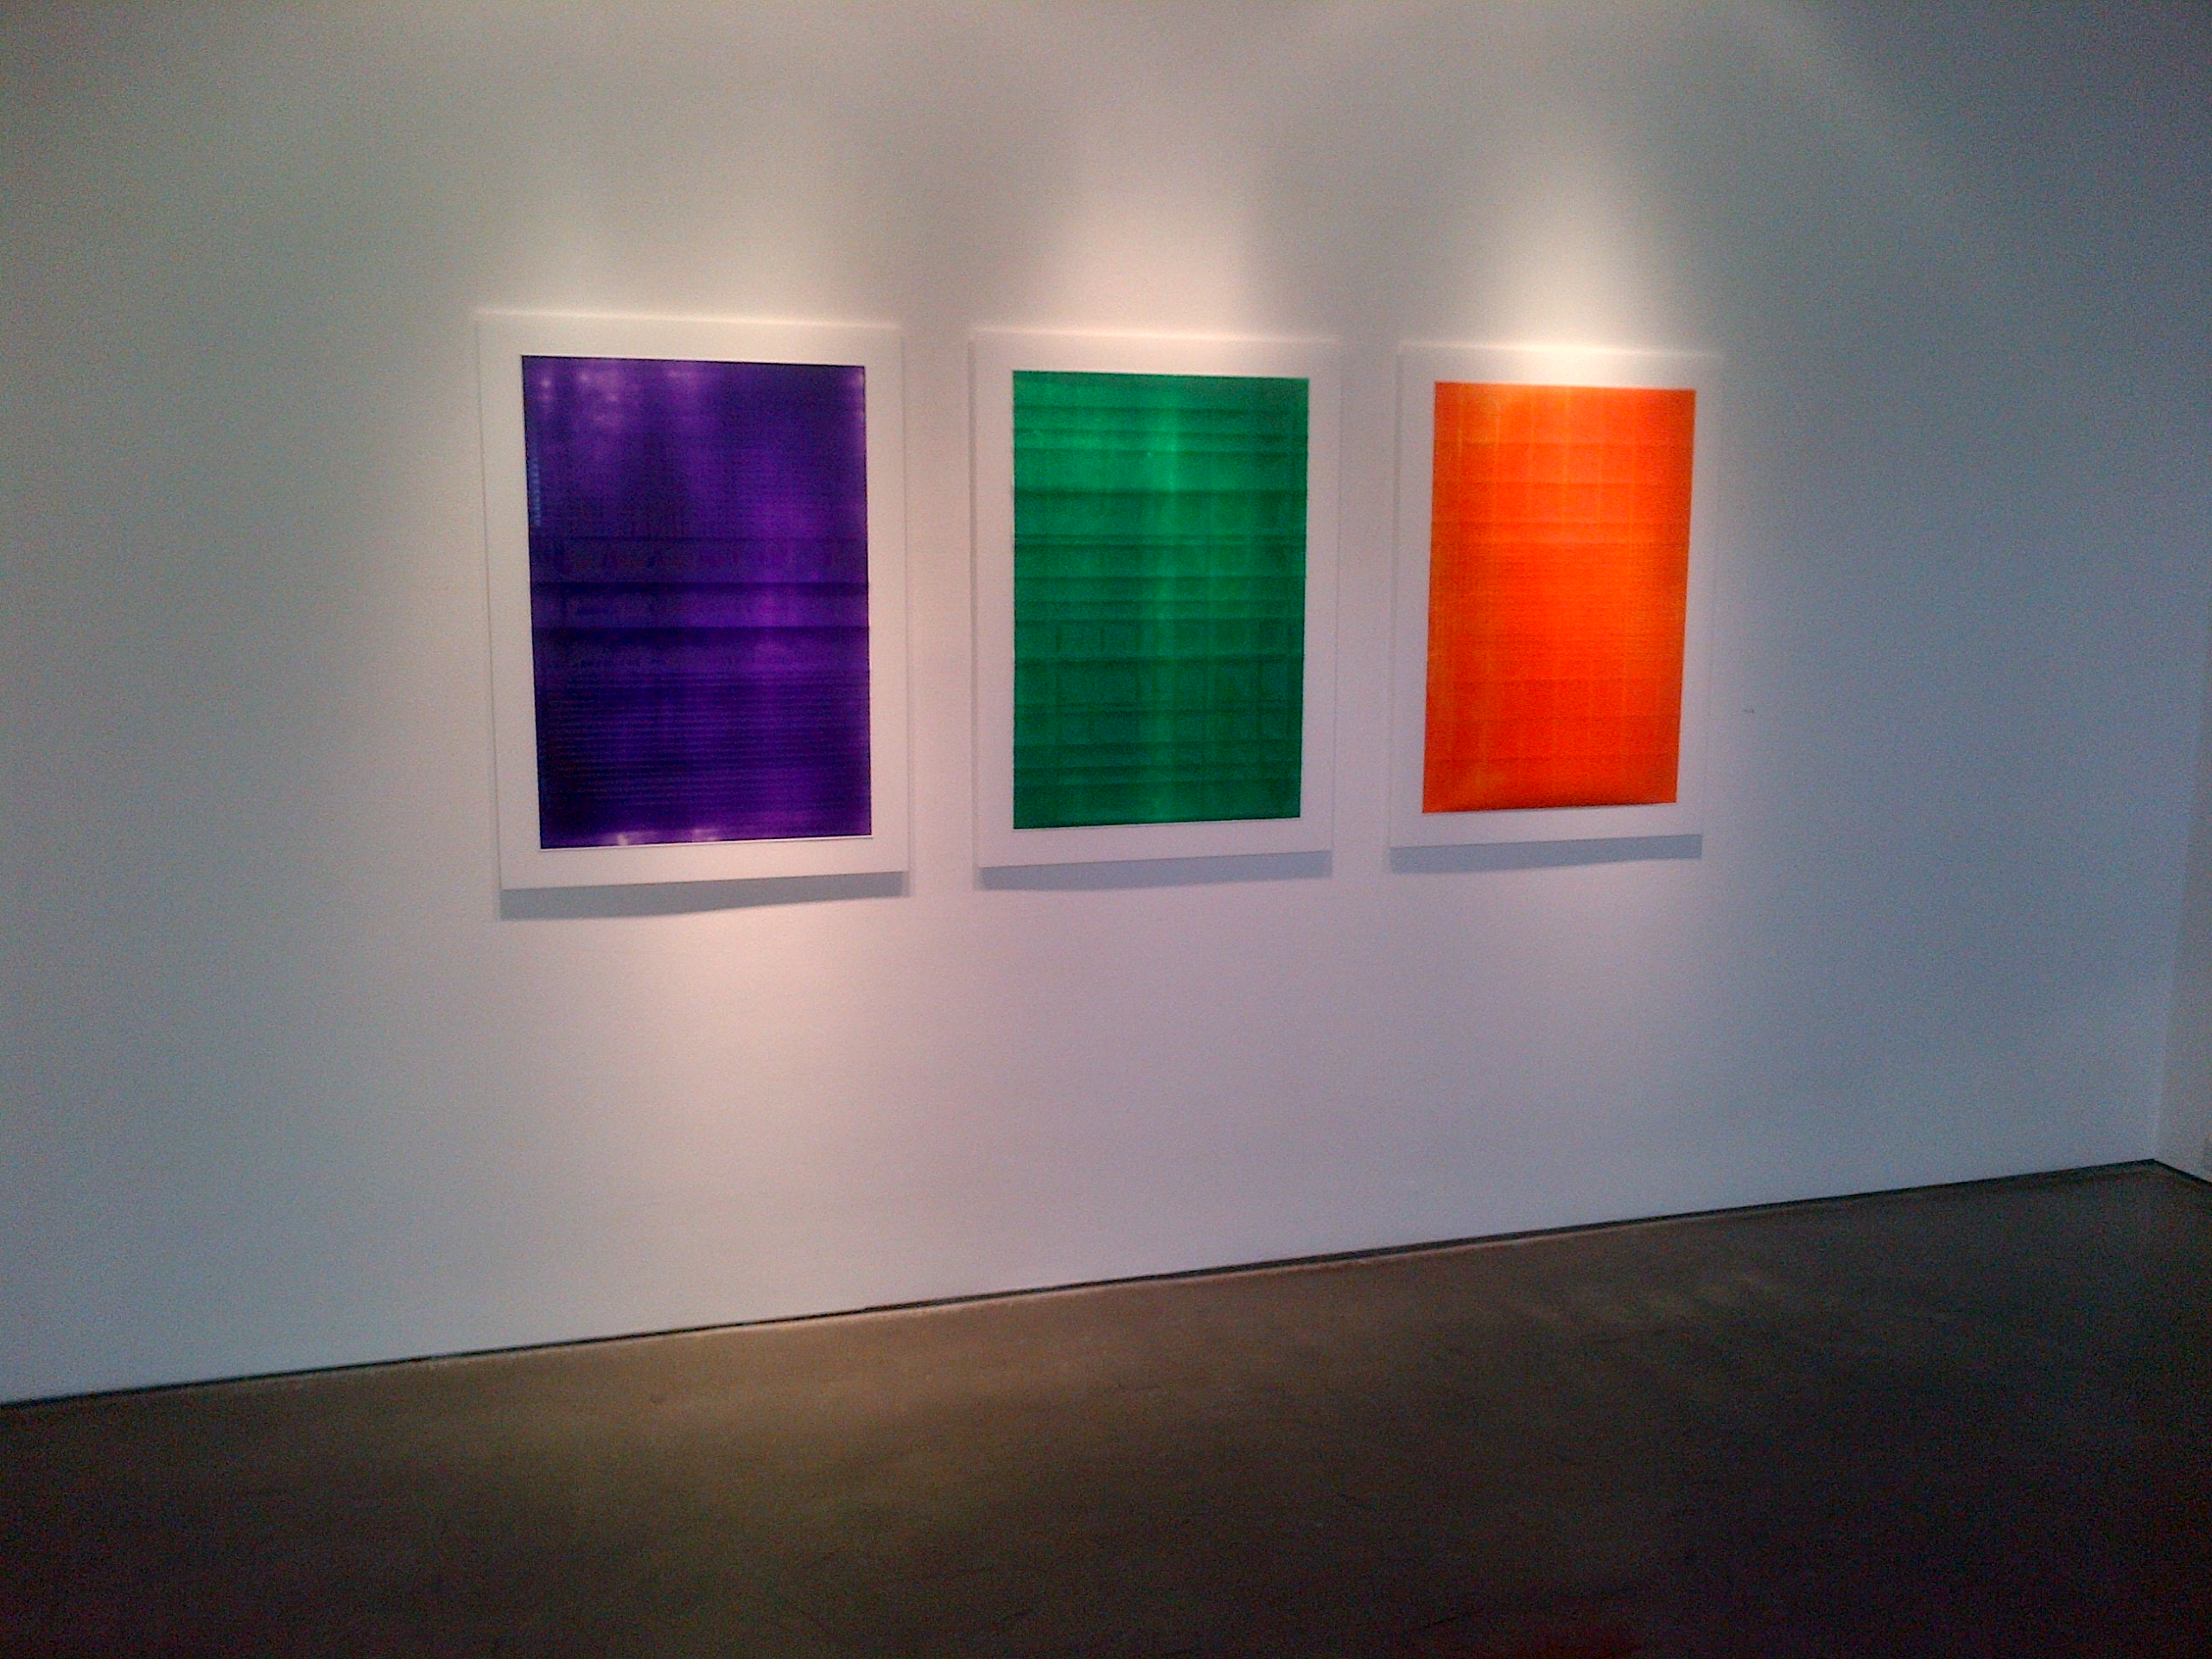 Purple, Green, Orange  Acrylic on powdered stone paper  32x66 inches 2013